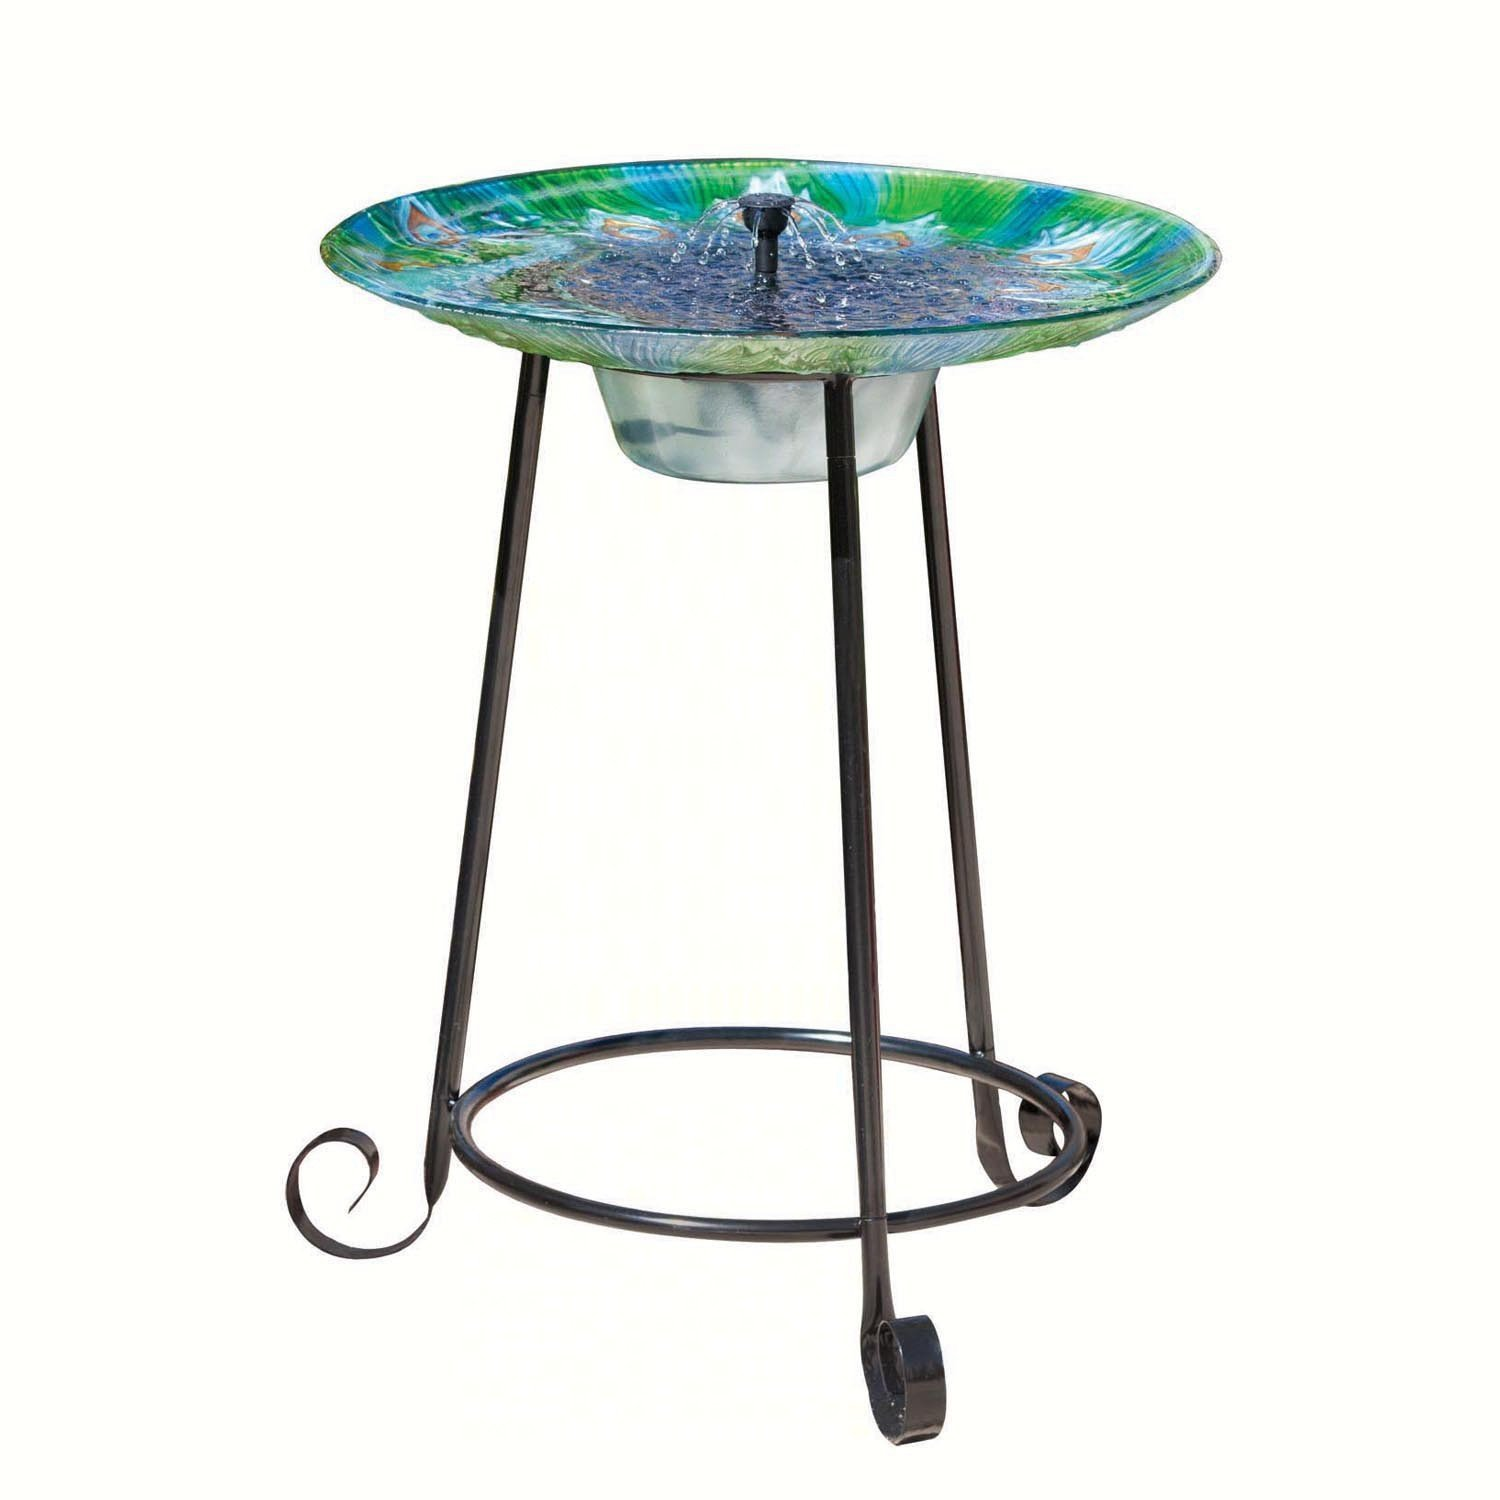 Smart Solar 20221R01 Argus Peacock Glass Solar Birdbath With Patented Underwater Integral Solar Panel and Pump System